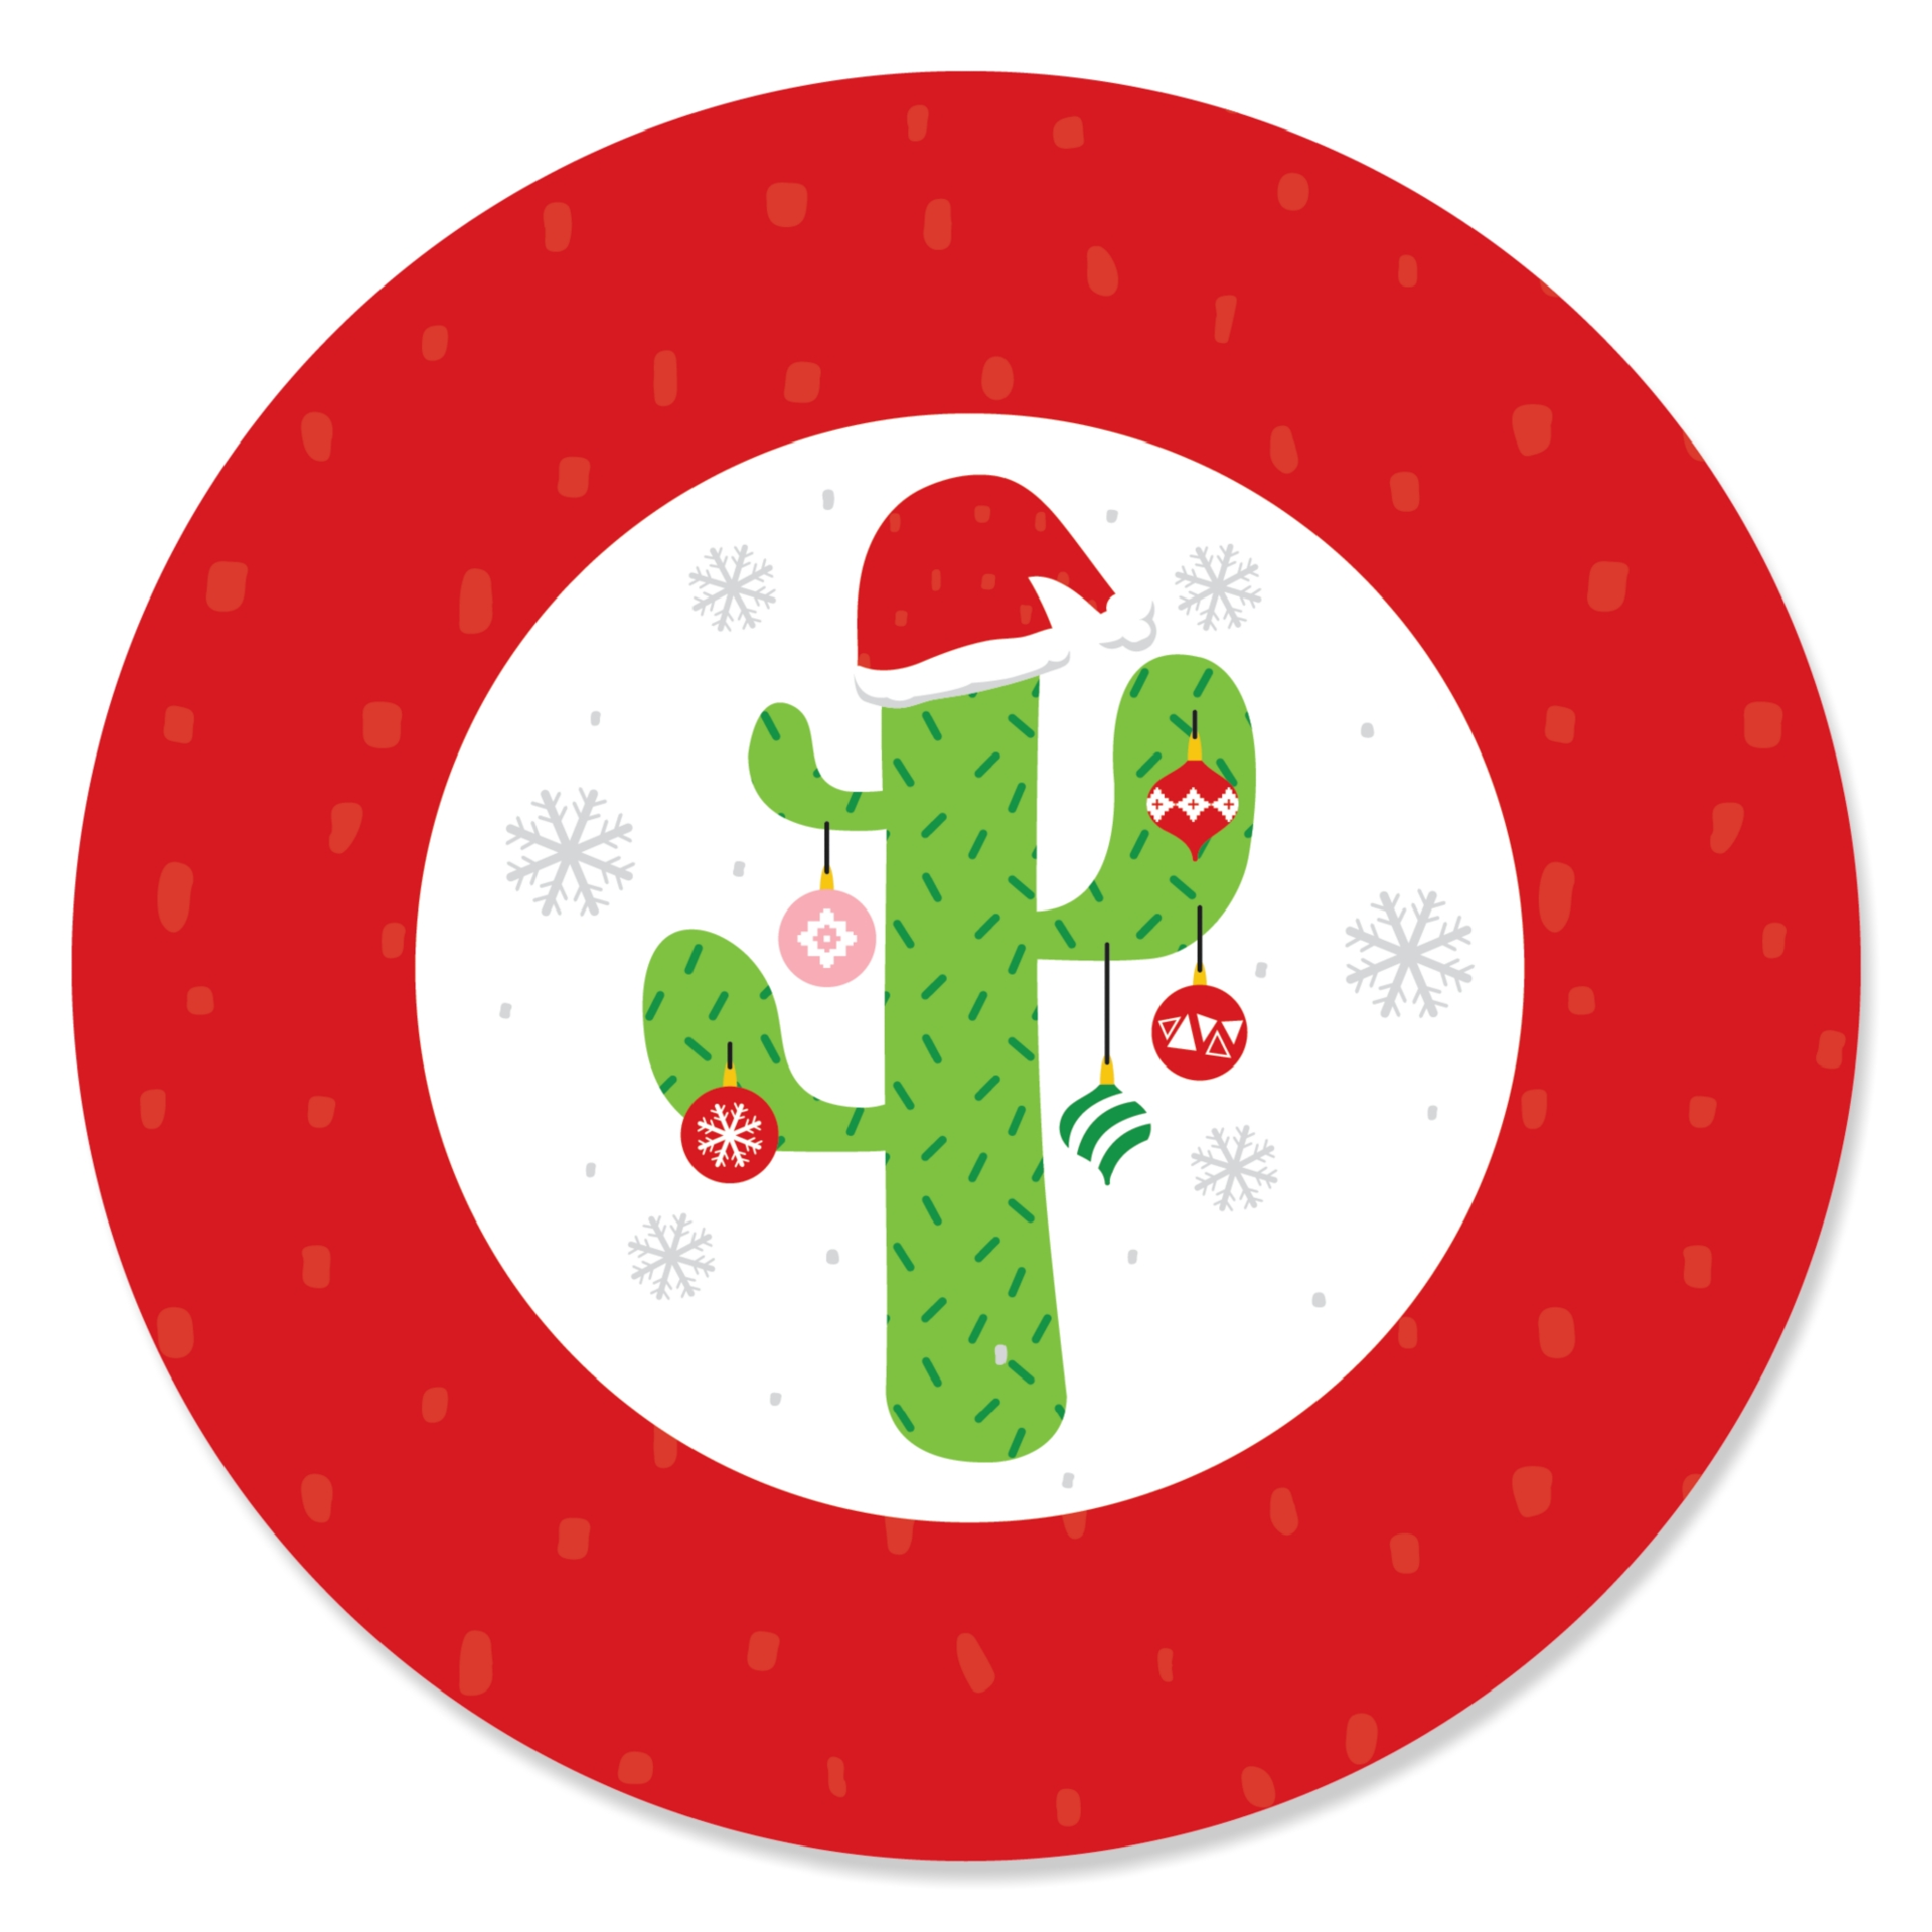 Merry Cactus - Christmas Cactus Party Favor Gift Tags (Set of 20)